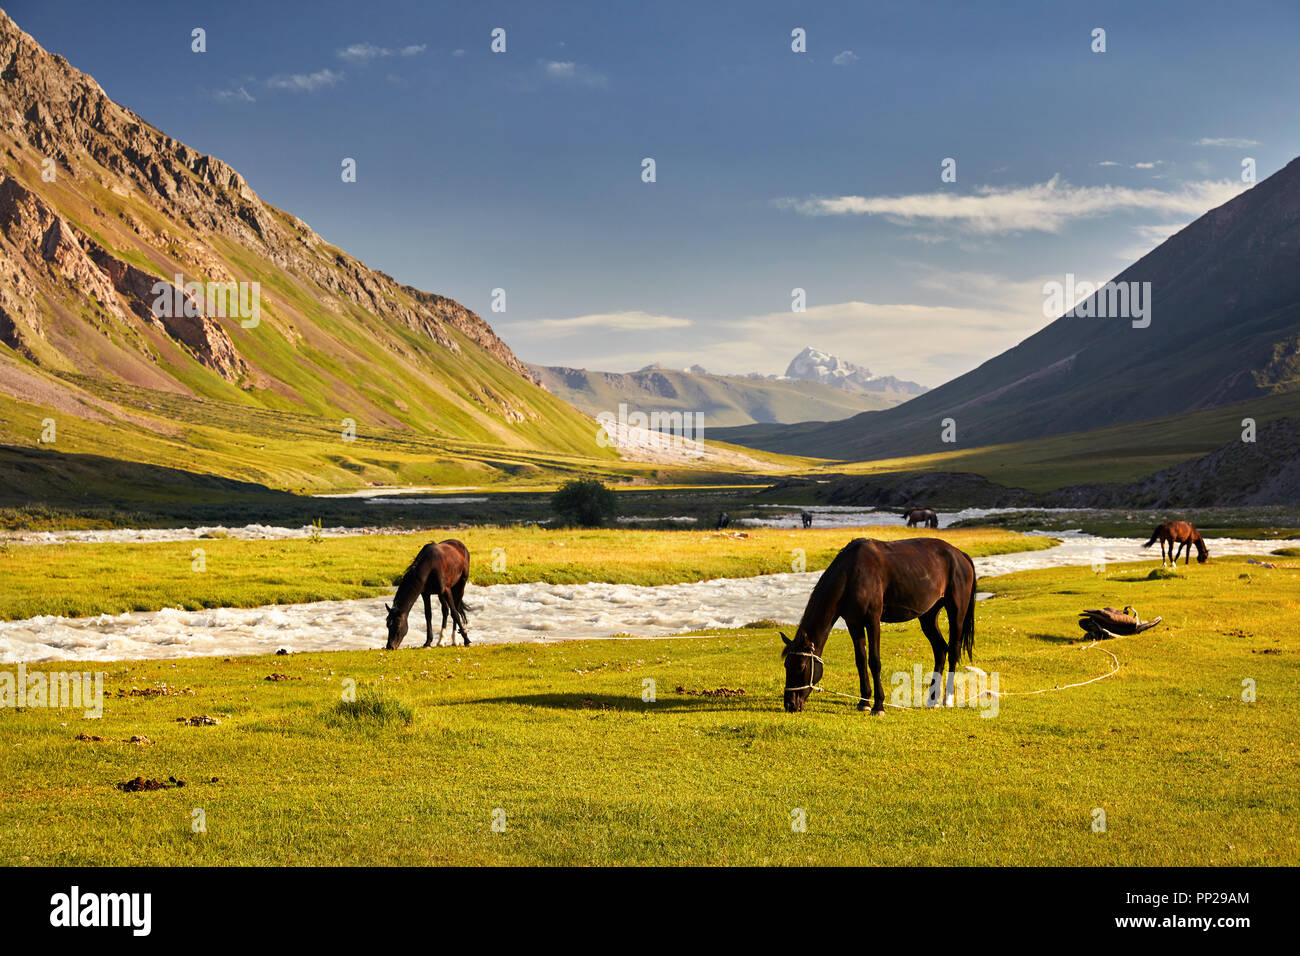 Horses in near the river in Terskey Alatau mountains of Kyrgyzstan, Central Asia - Stock Image